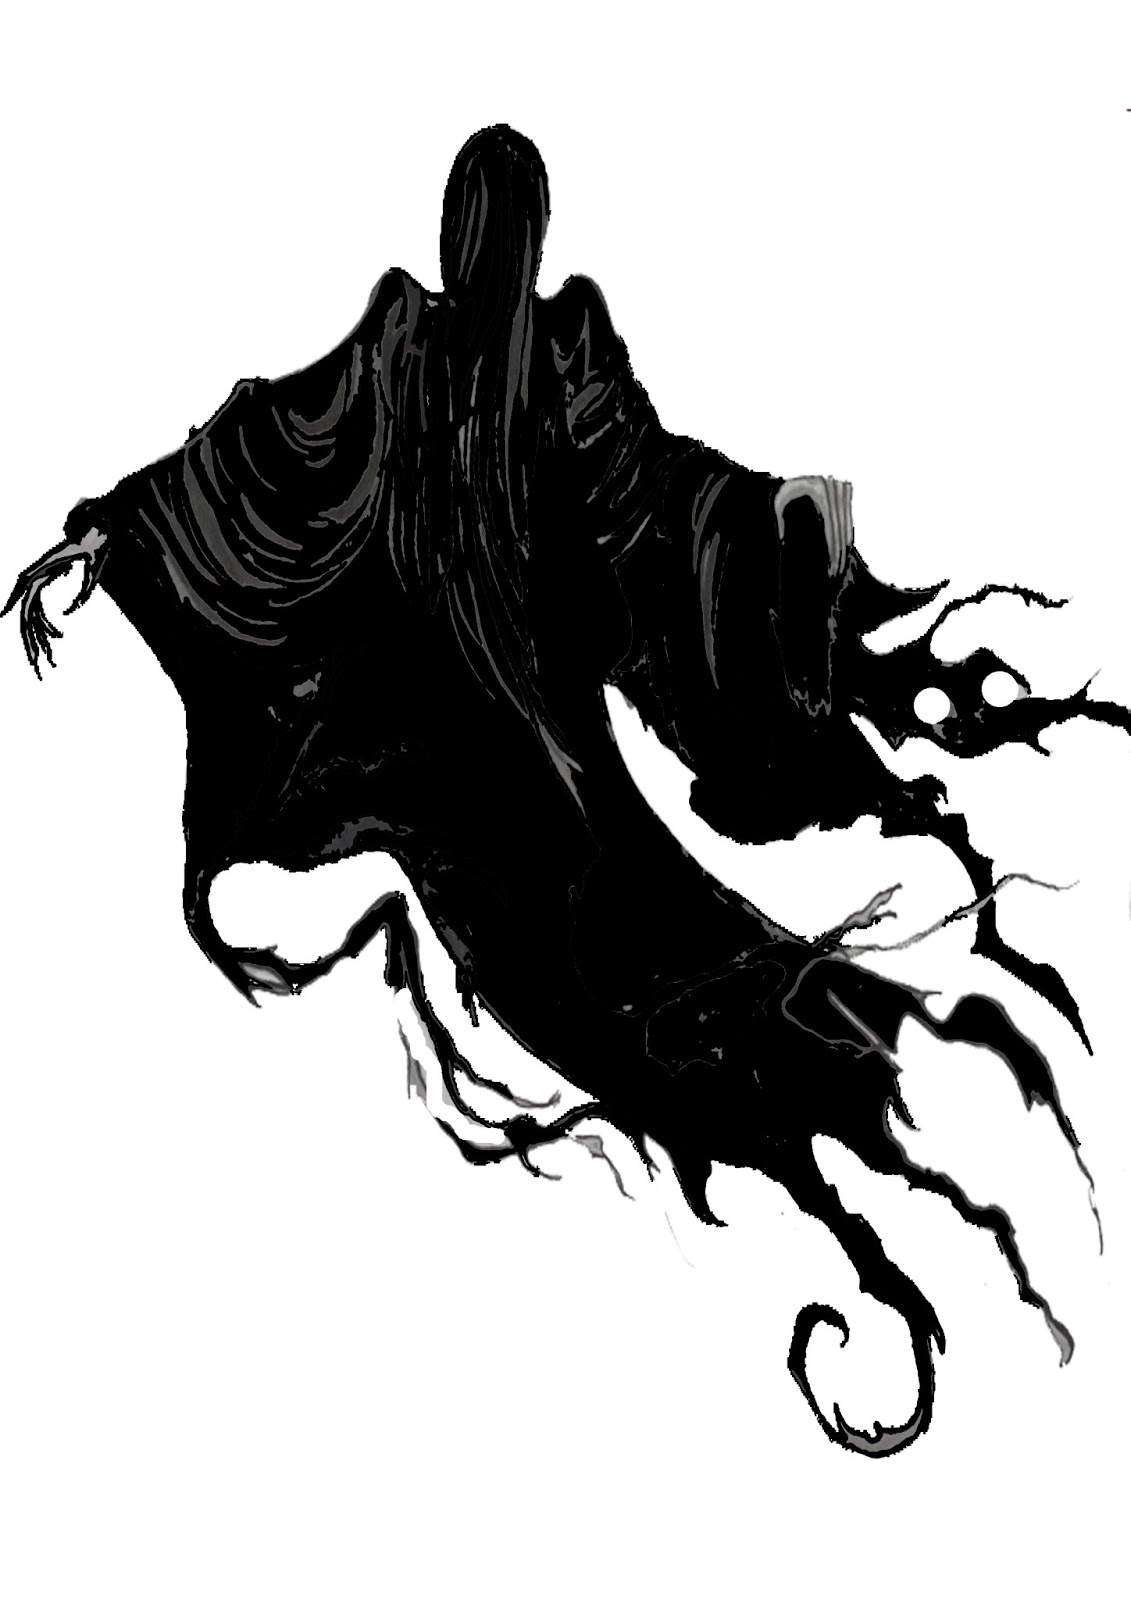 Dementor drawing free download on ayoqq cliparts.